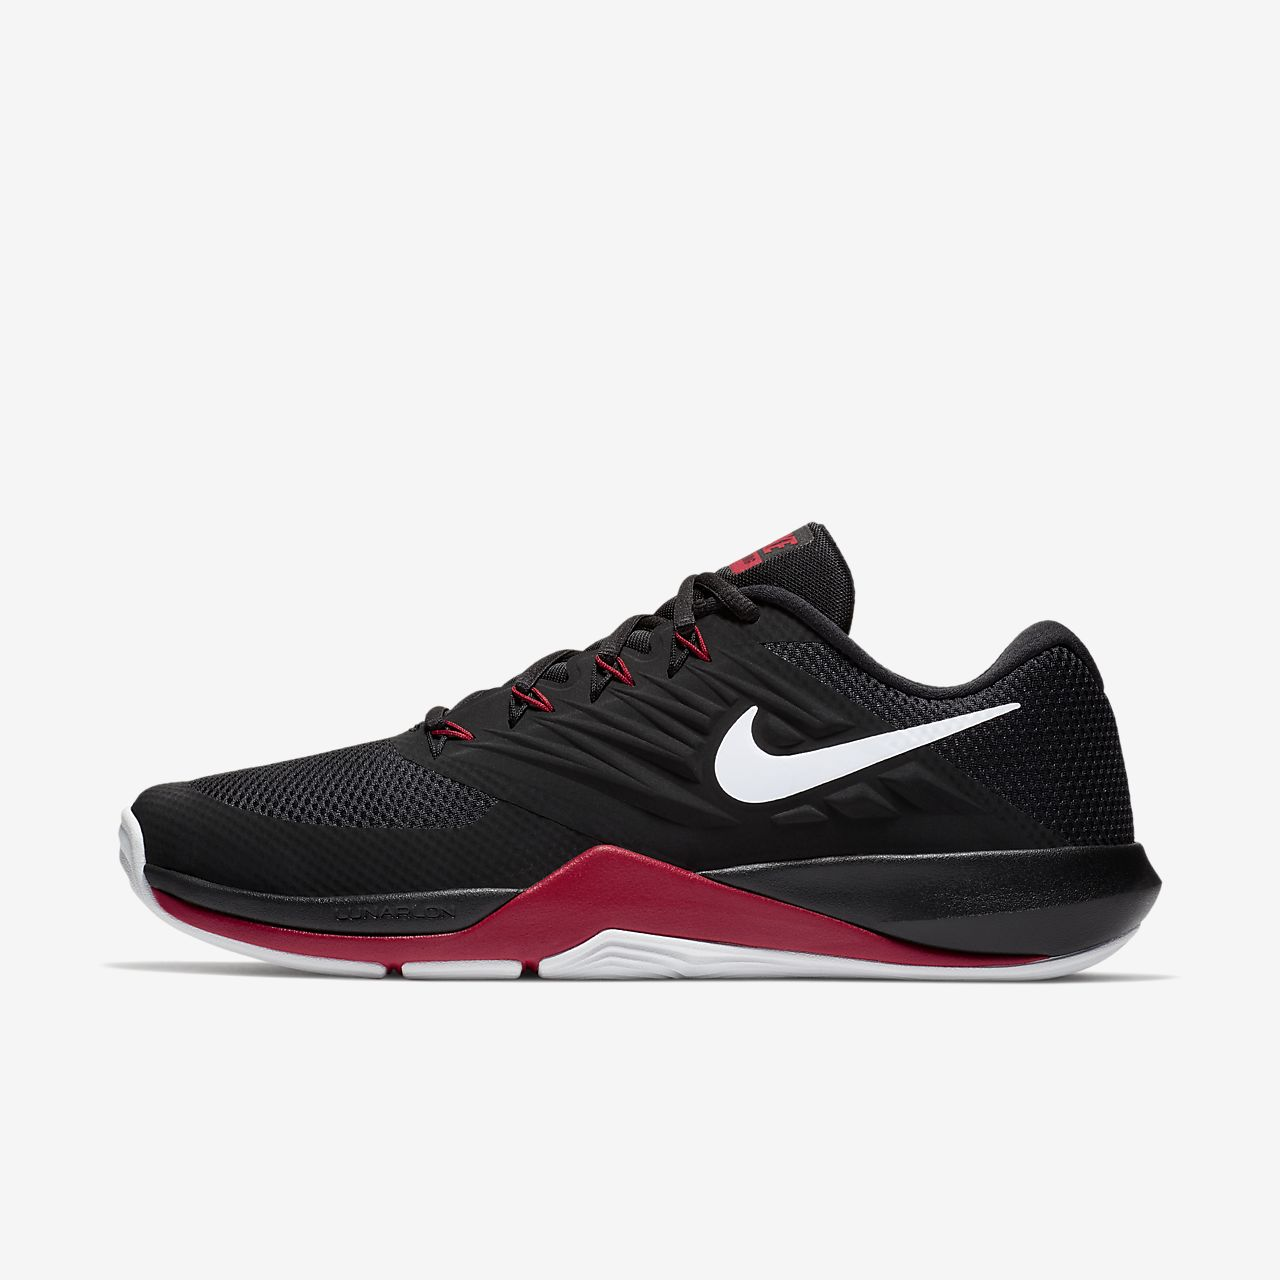 ... Nike Lunar Prime Iron II Men's Training Shoe